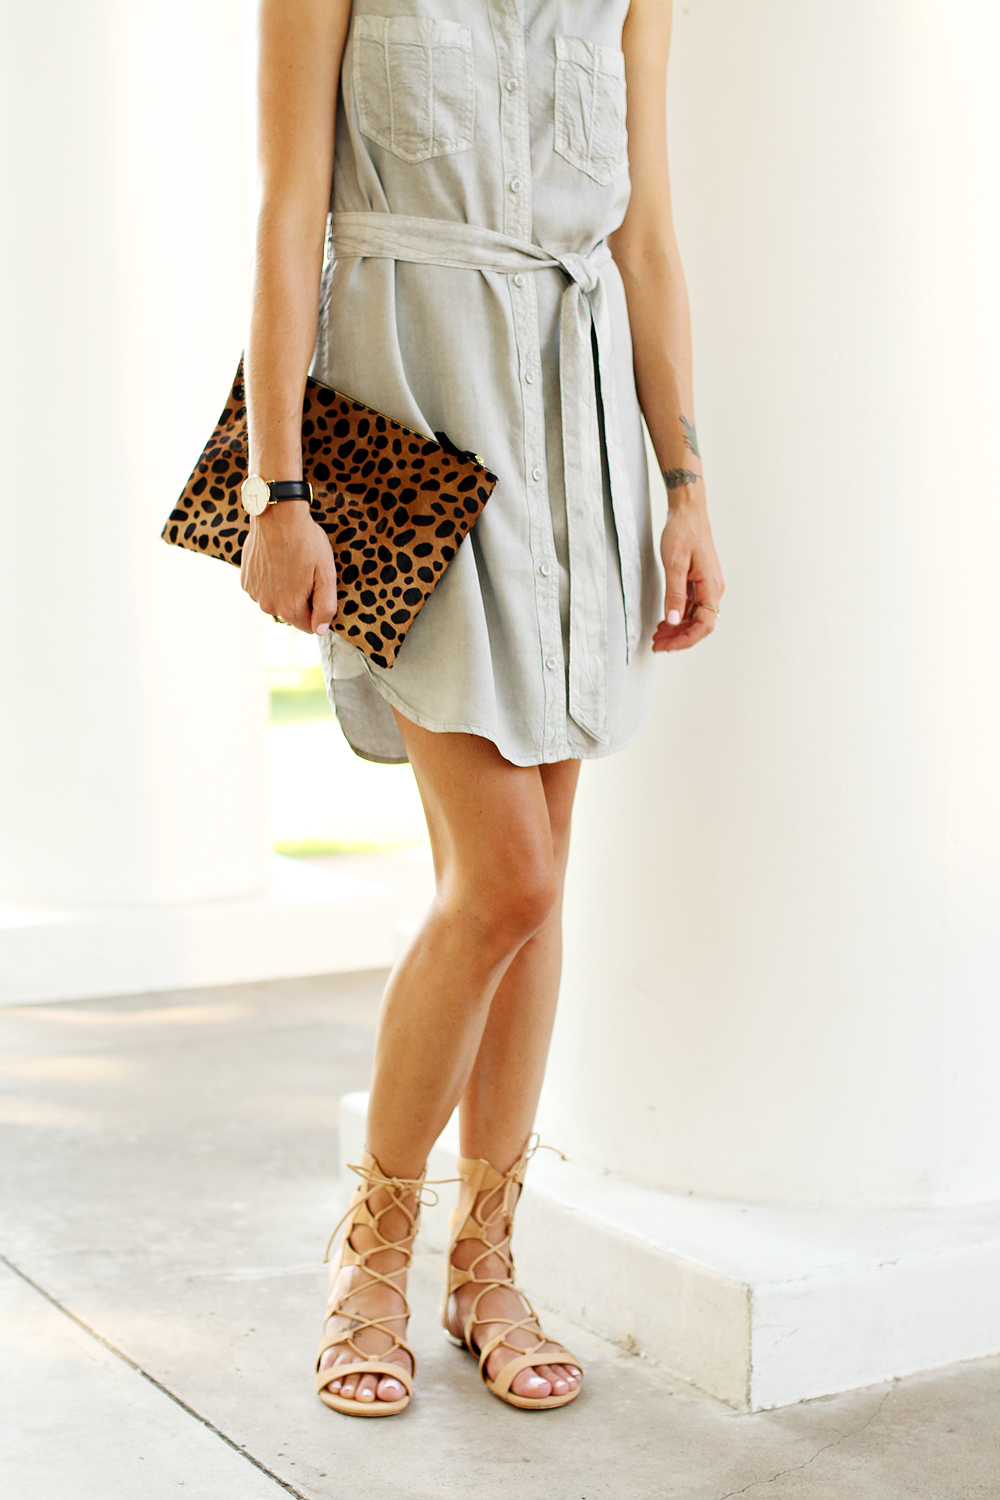 fashion-jackson-clare-v-leopard-clutch-sleeveless-tencel-shirt-dress-schutz-lina-lace-up-gladiators